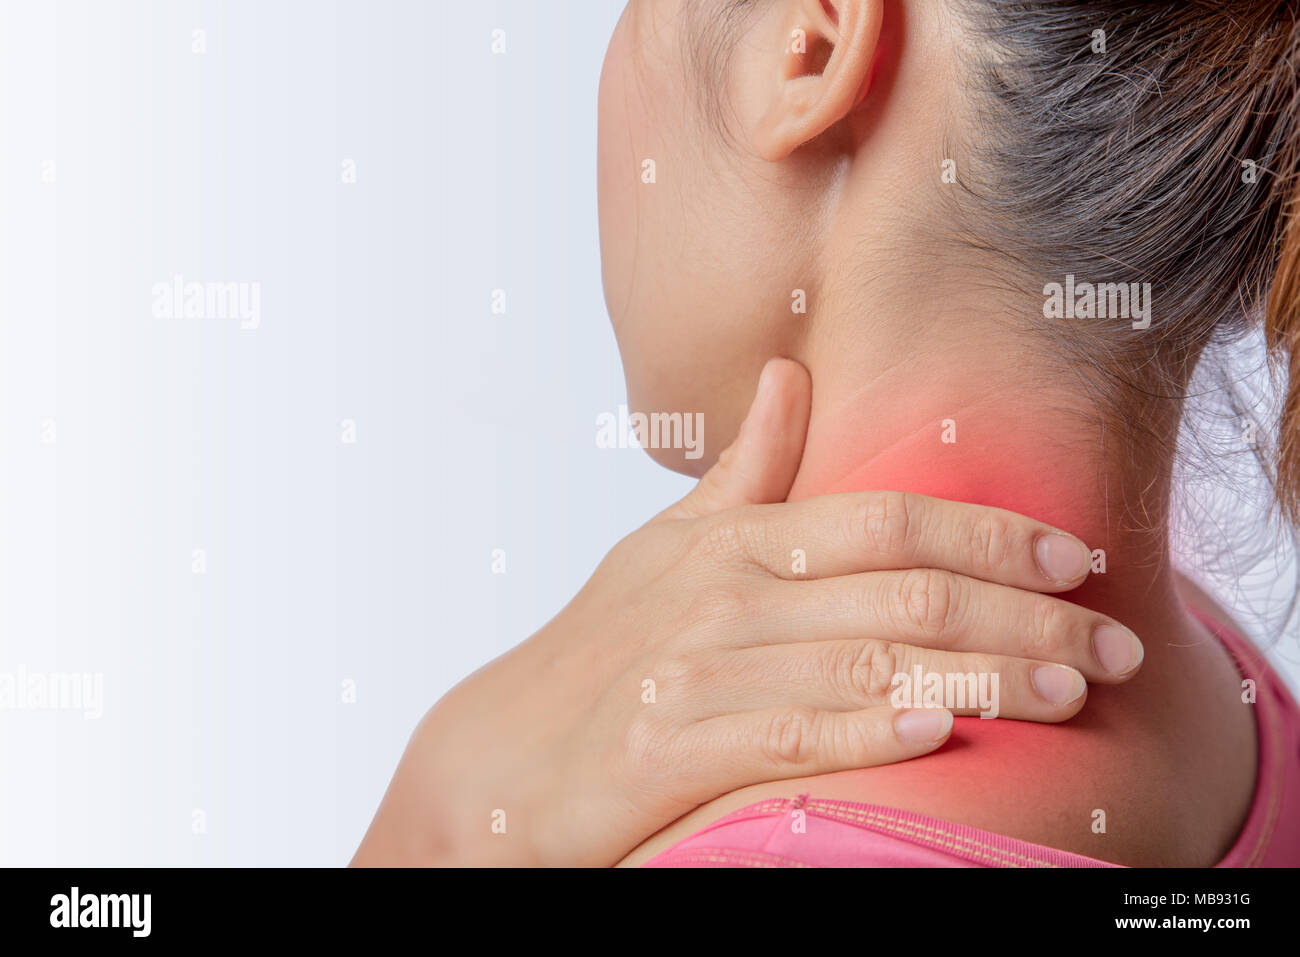 woman pain at trapezius muscle and holding right hand on muscle, swelling and inflammation of left rotator cuff muscle - Stock Image